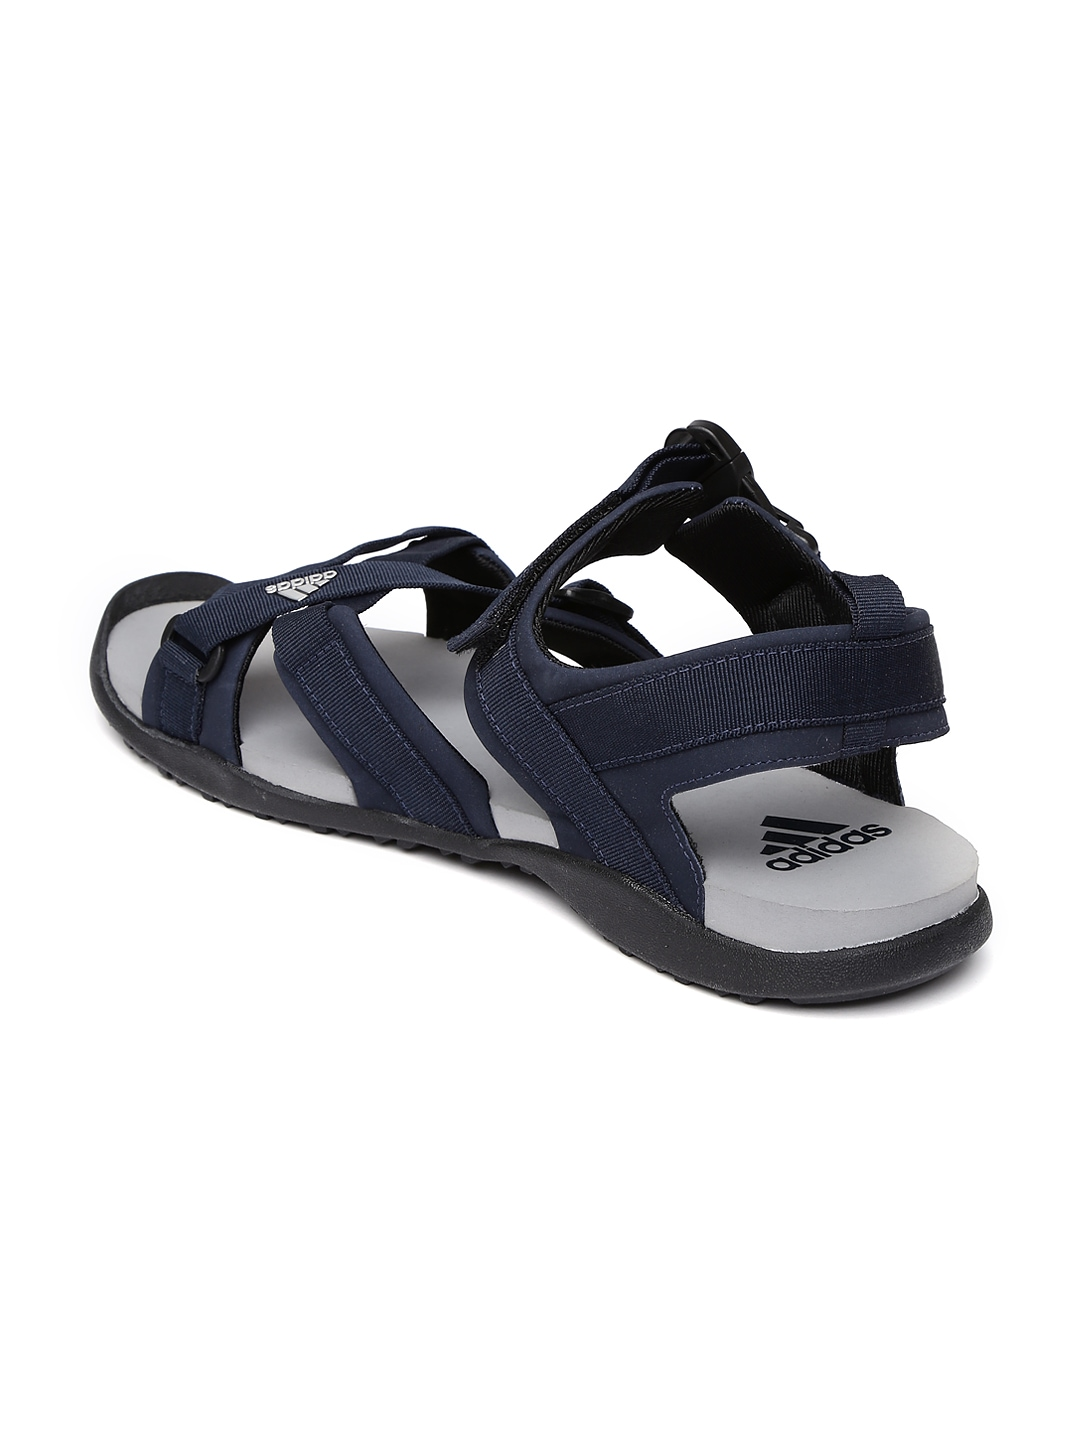 9bedf8320 adidas mens sandals online on sale   OFF61% Discounted